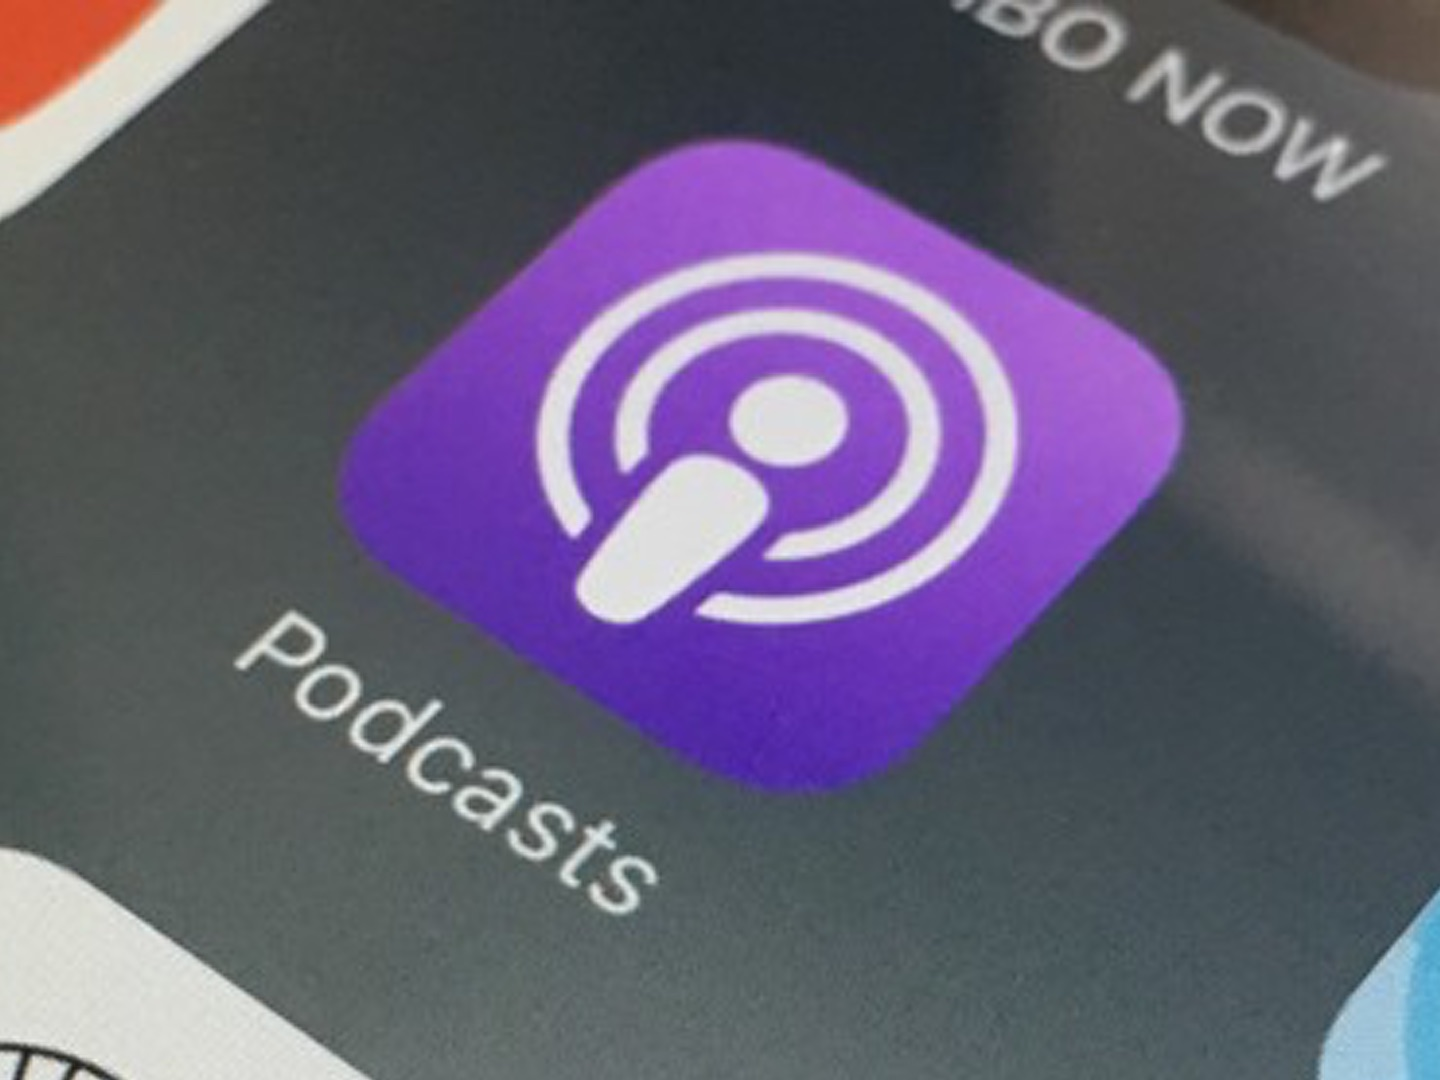 Podcasts+, el posible nuevo servicio de Apple para competir con Spotify